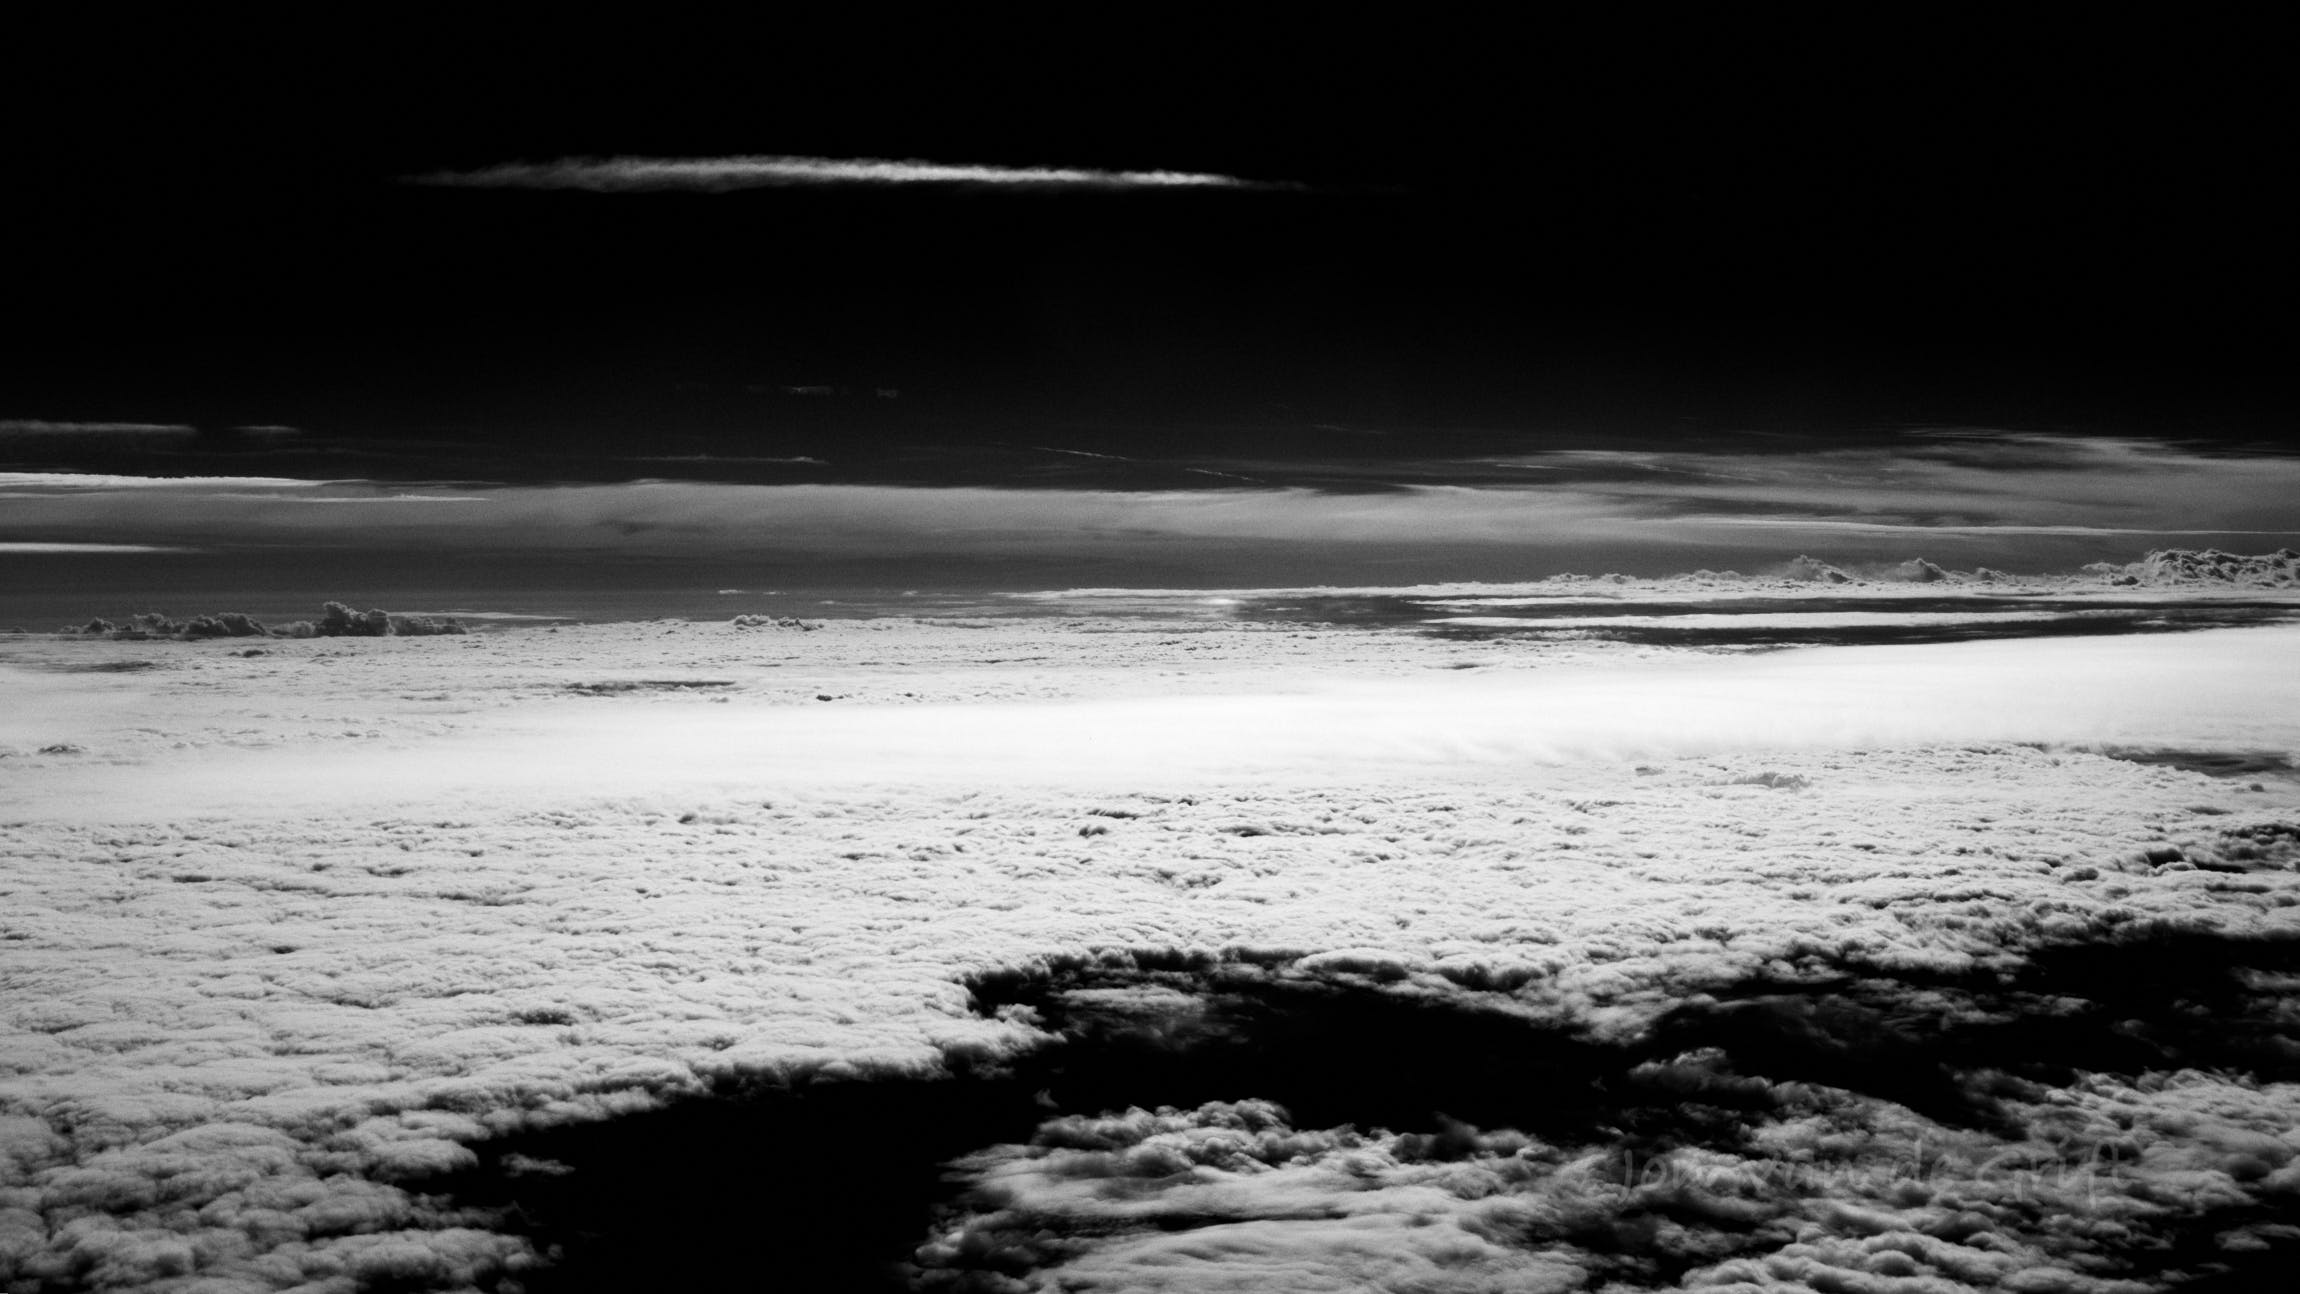 Black and white aerial photograph captured above a layer of stratus clouds.